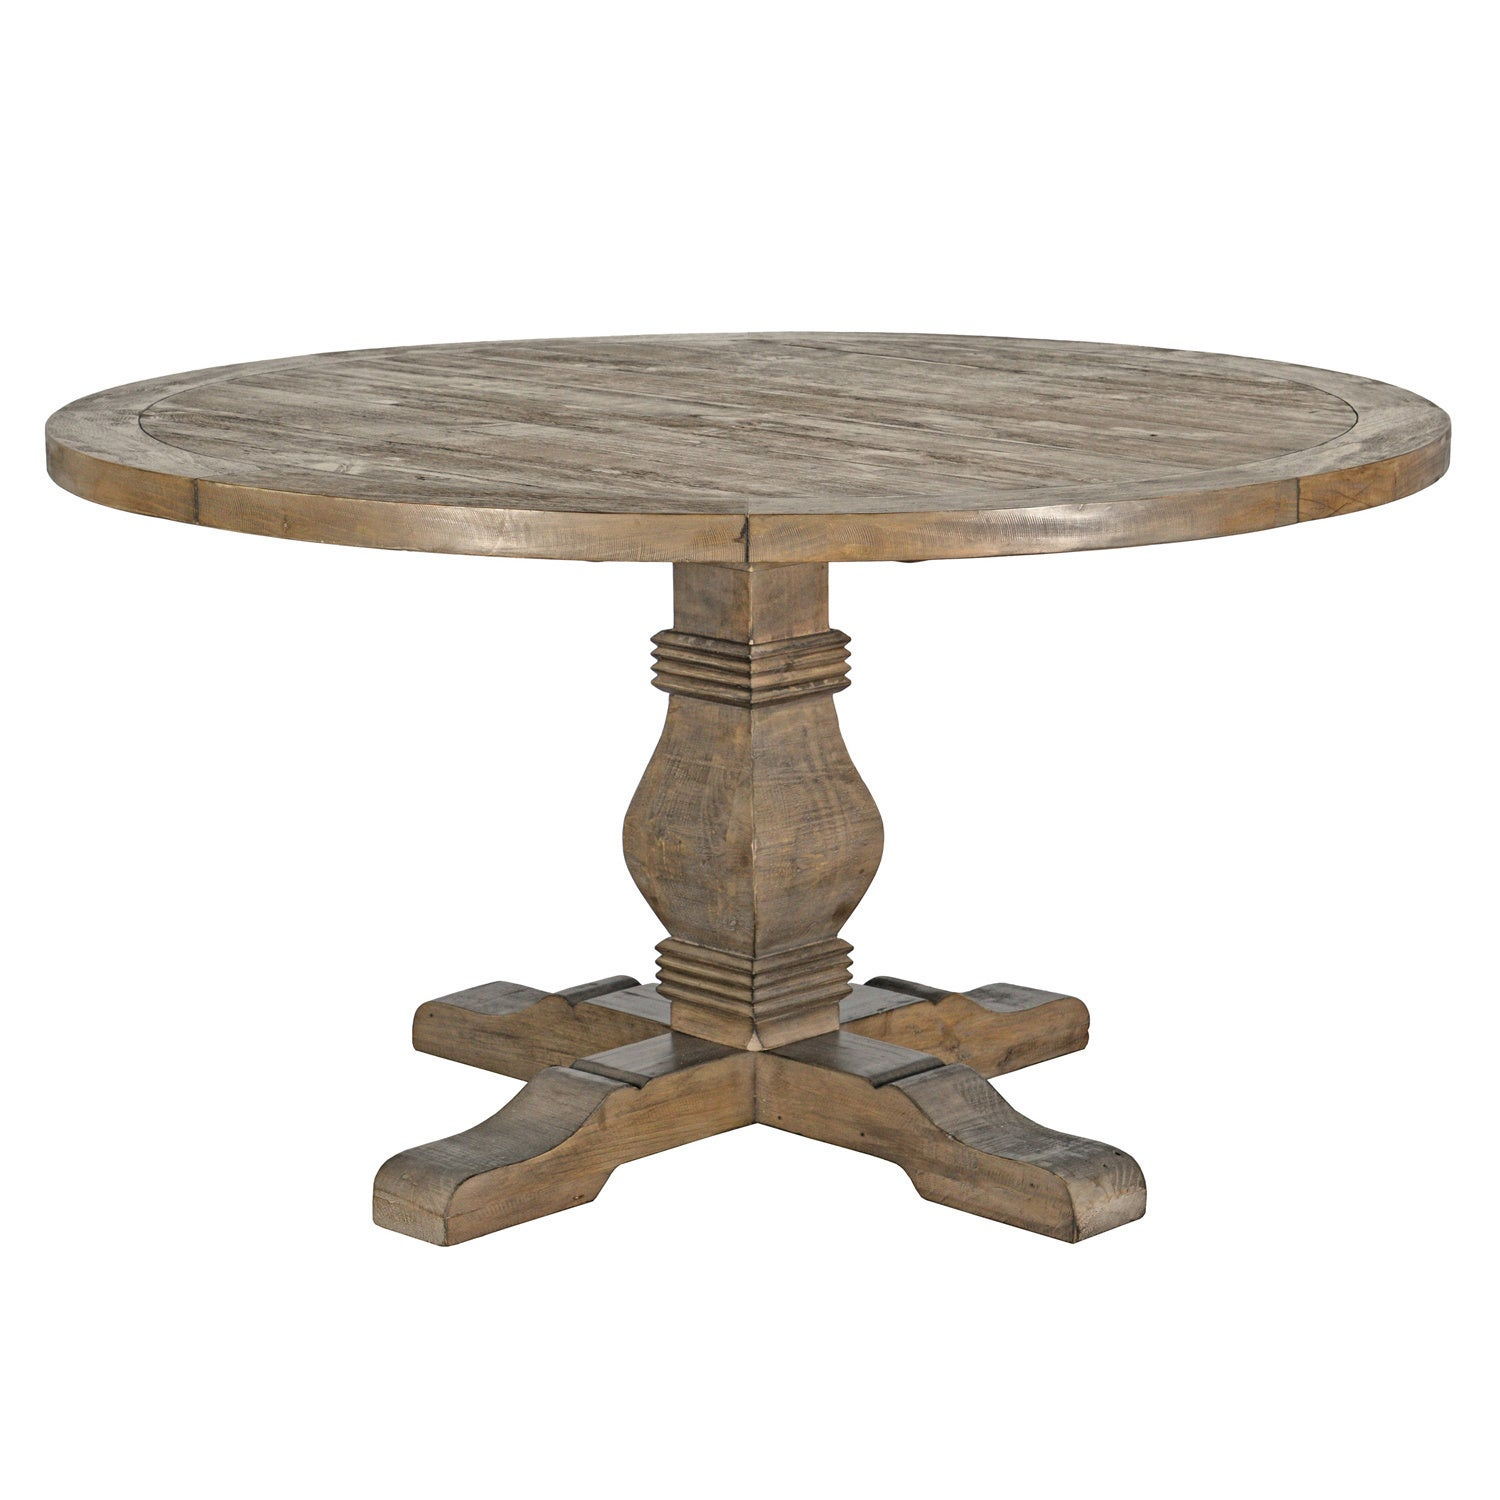 Kasey Reclaimed Wood 55 Inch Round Dining Table By Kosas Home   Taupe    Free Shipping Today   Overstock.com   18297444